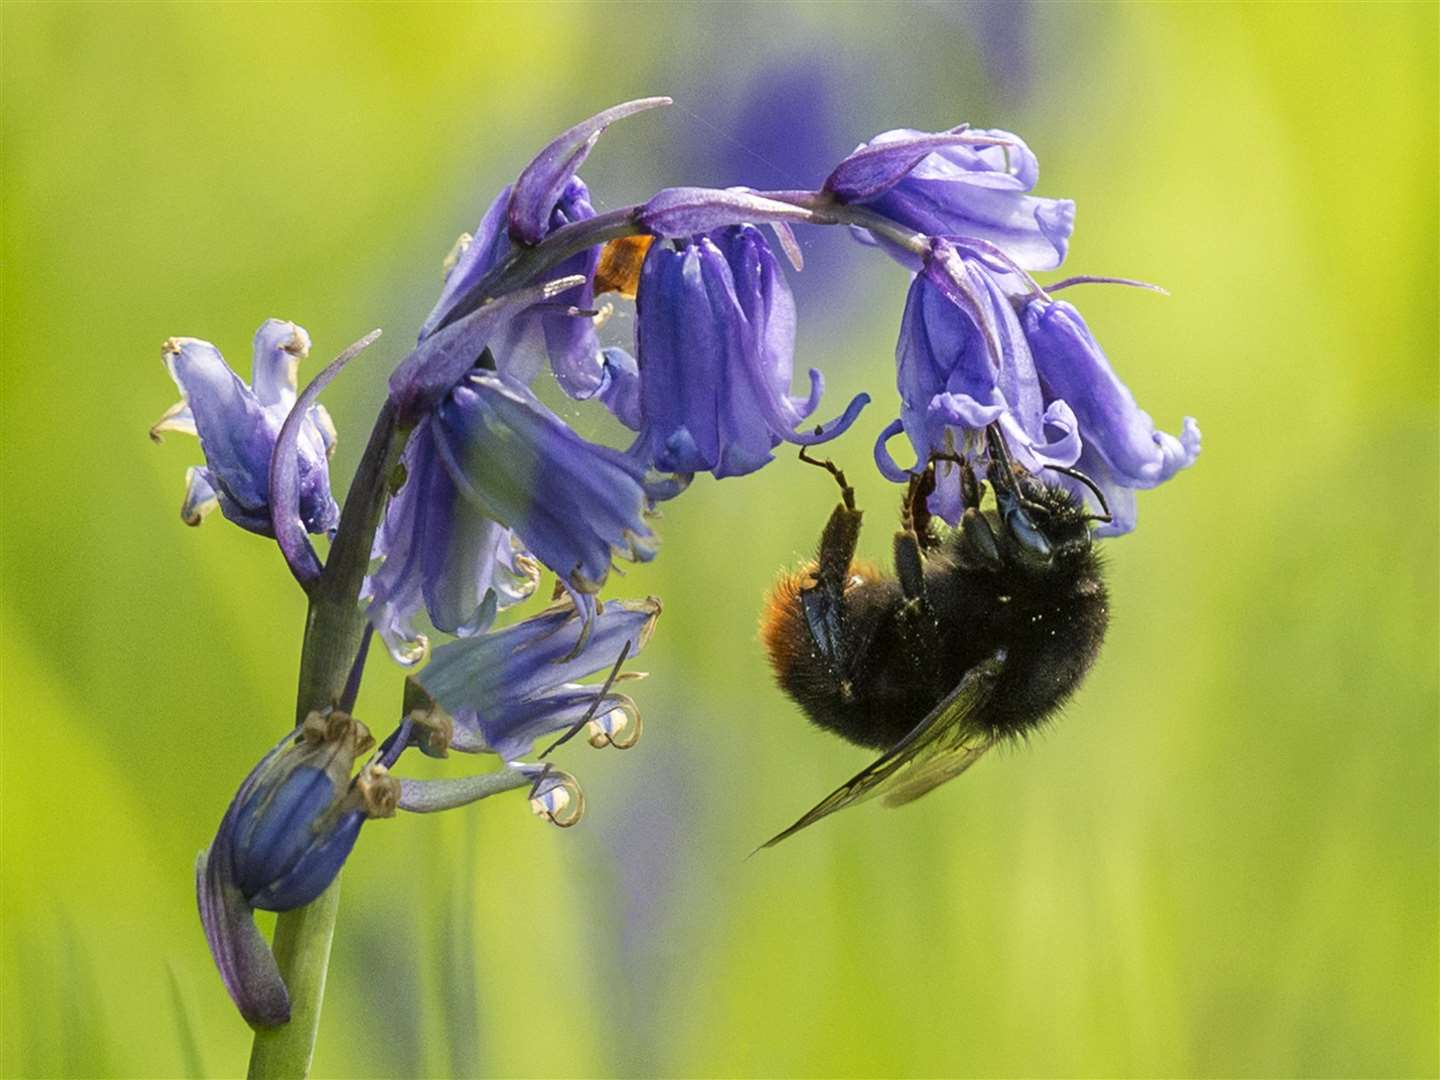 A bumblebee clings to a bluebell